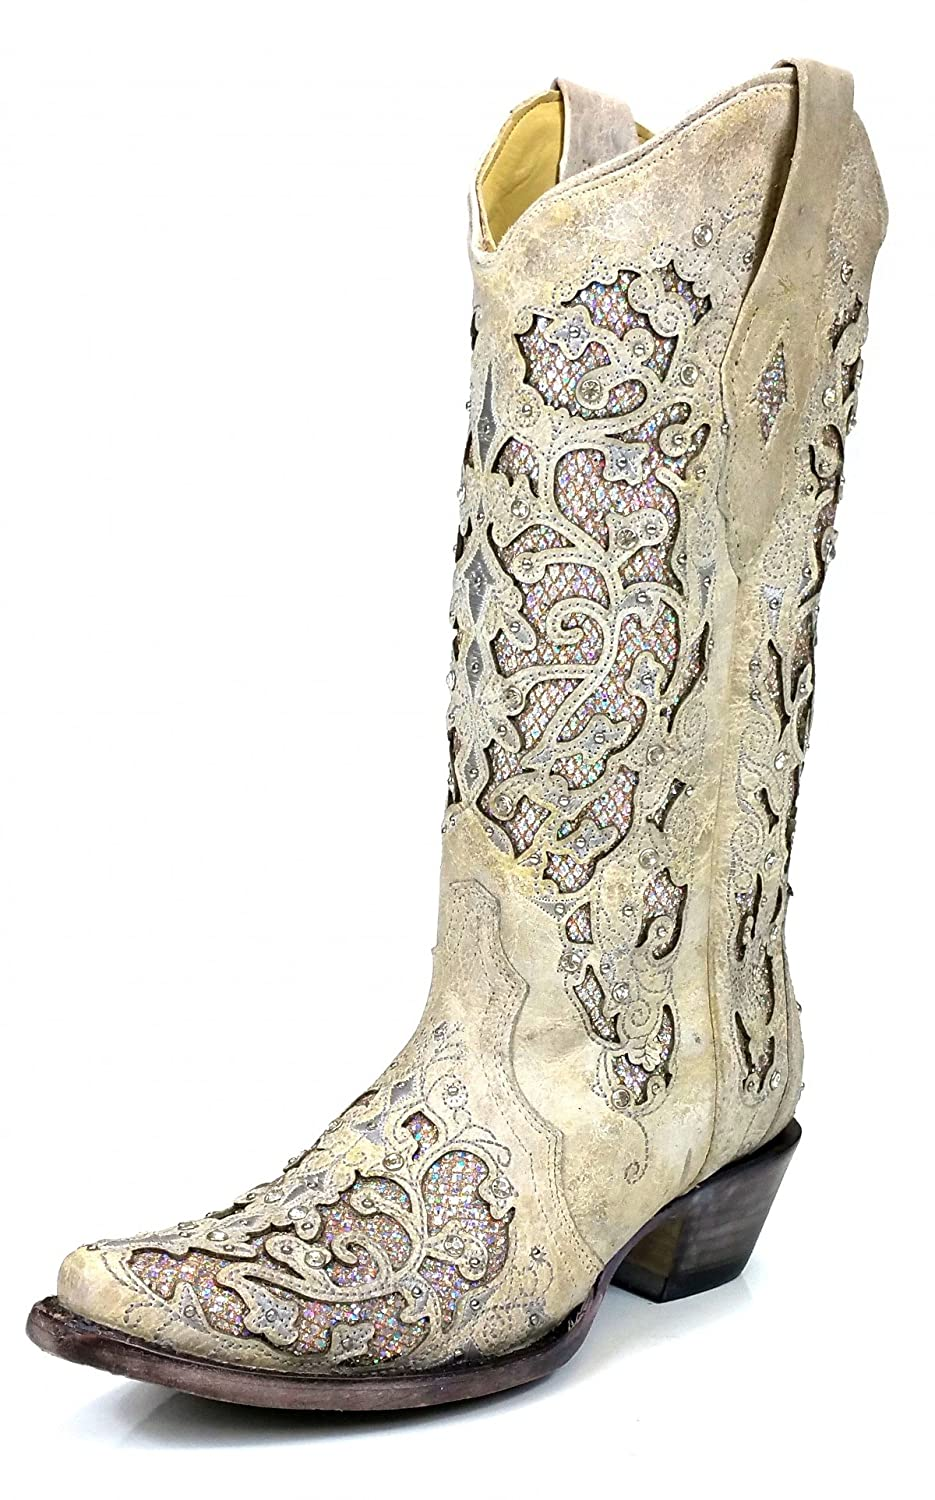 CORRAL A3322 Martina White Women's Glitter Inlay Crystals Wedding Fashion Western Boots B06XS2GXB2 10 B(M) US|White